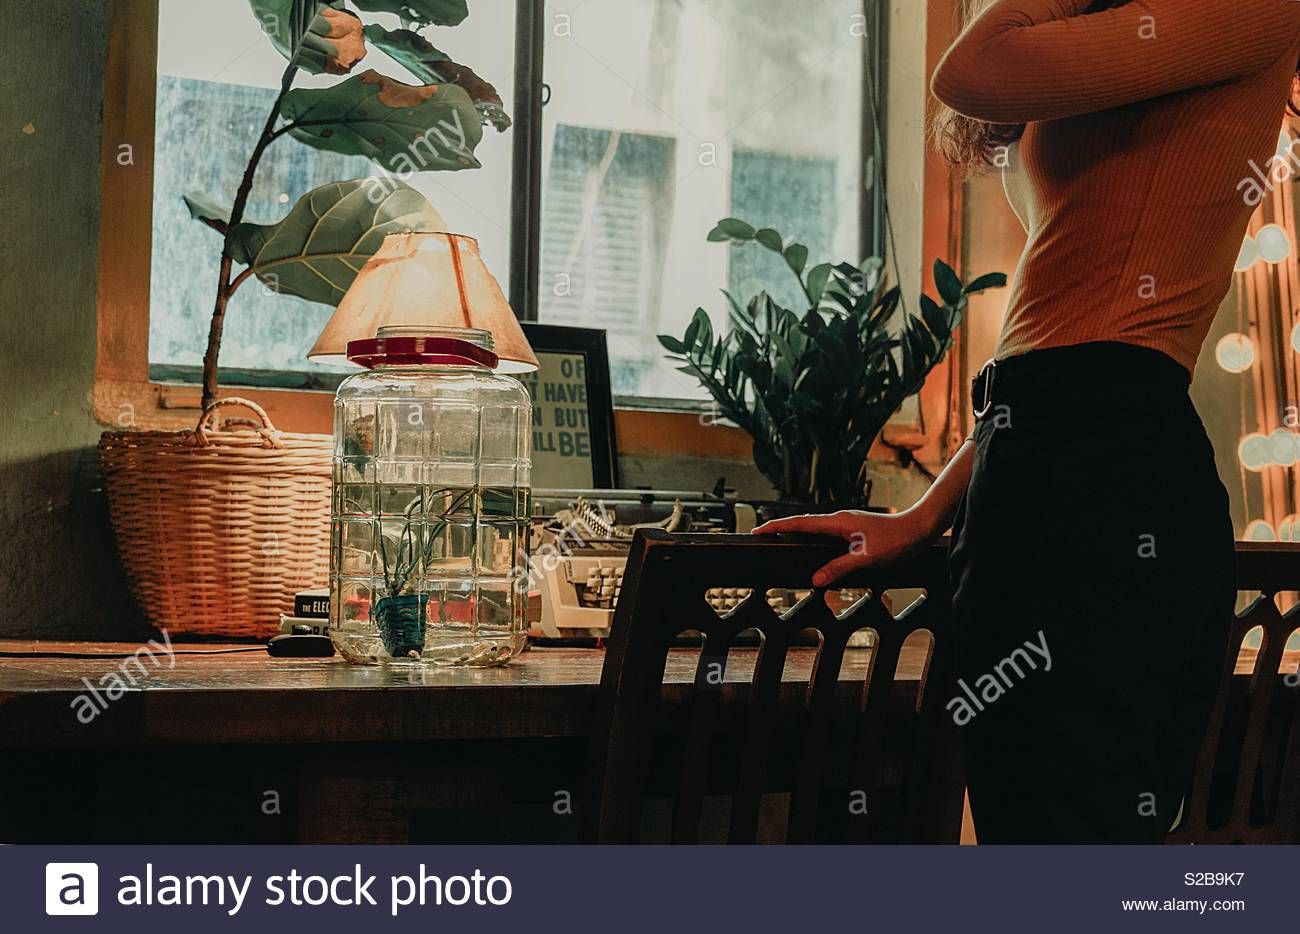 Going to work - Stock Image